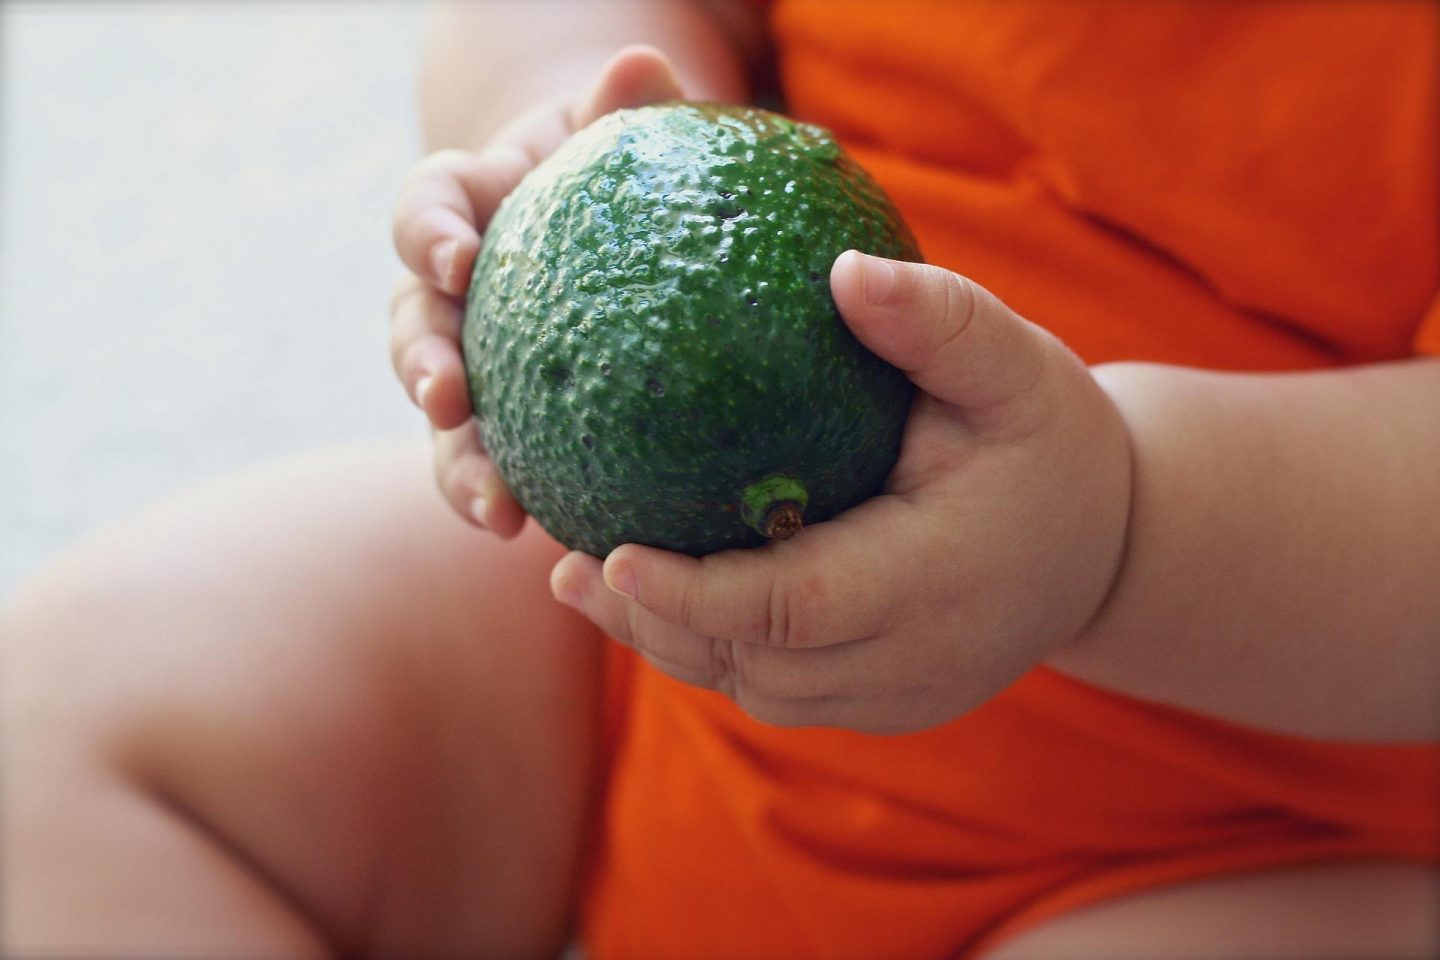 Close up of a green avacado and a child wearing a bright orange top